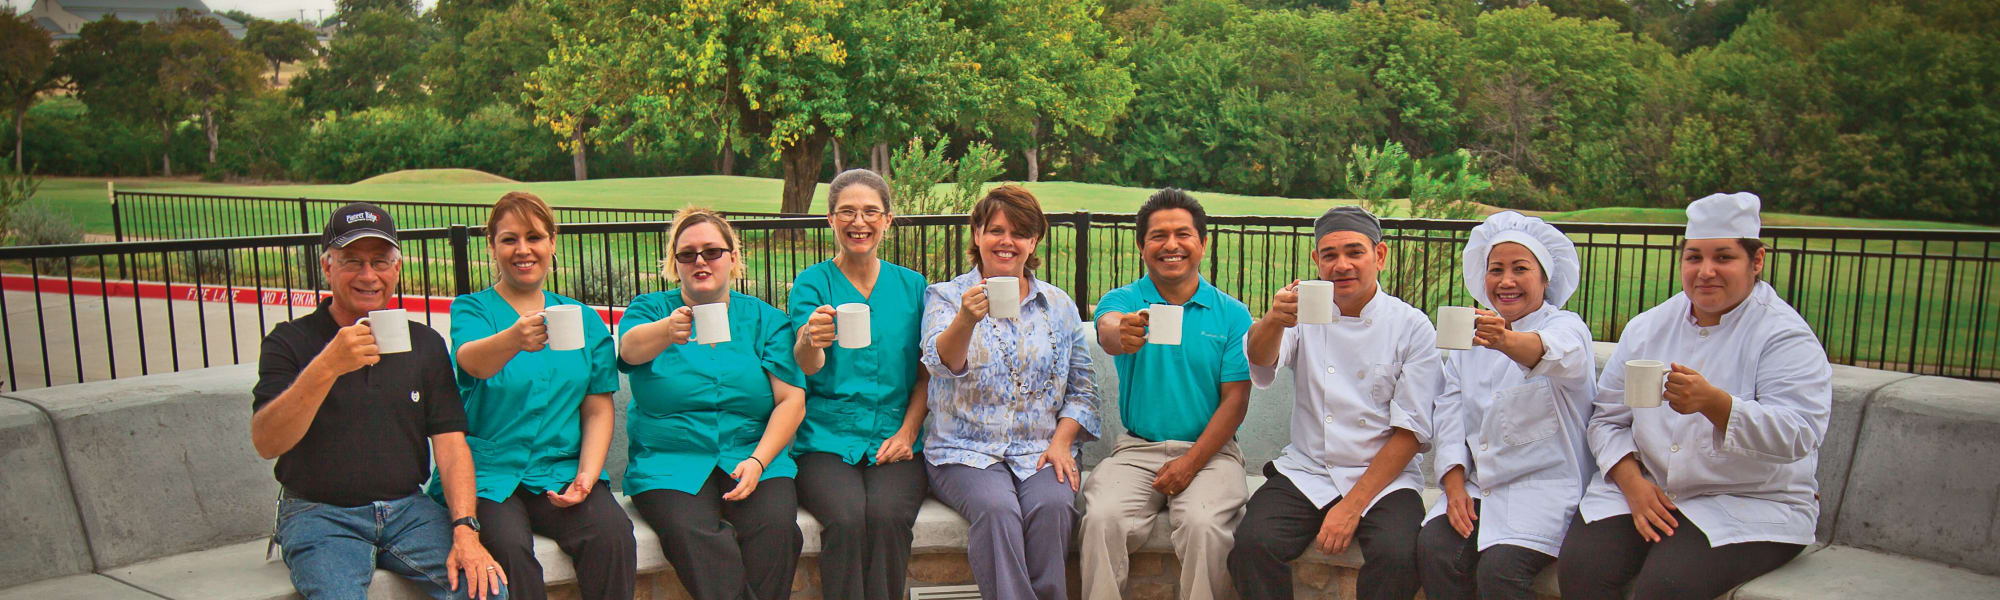 Careers at Pioneer Ridge Gracious Retirement Living in McKinney, Texas